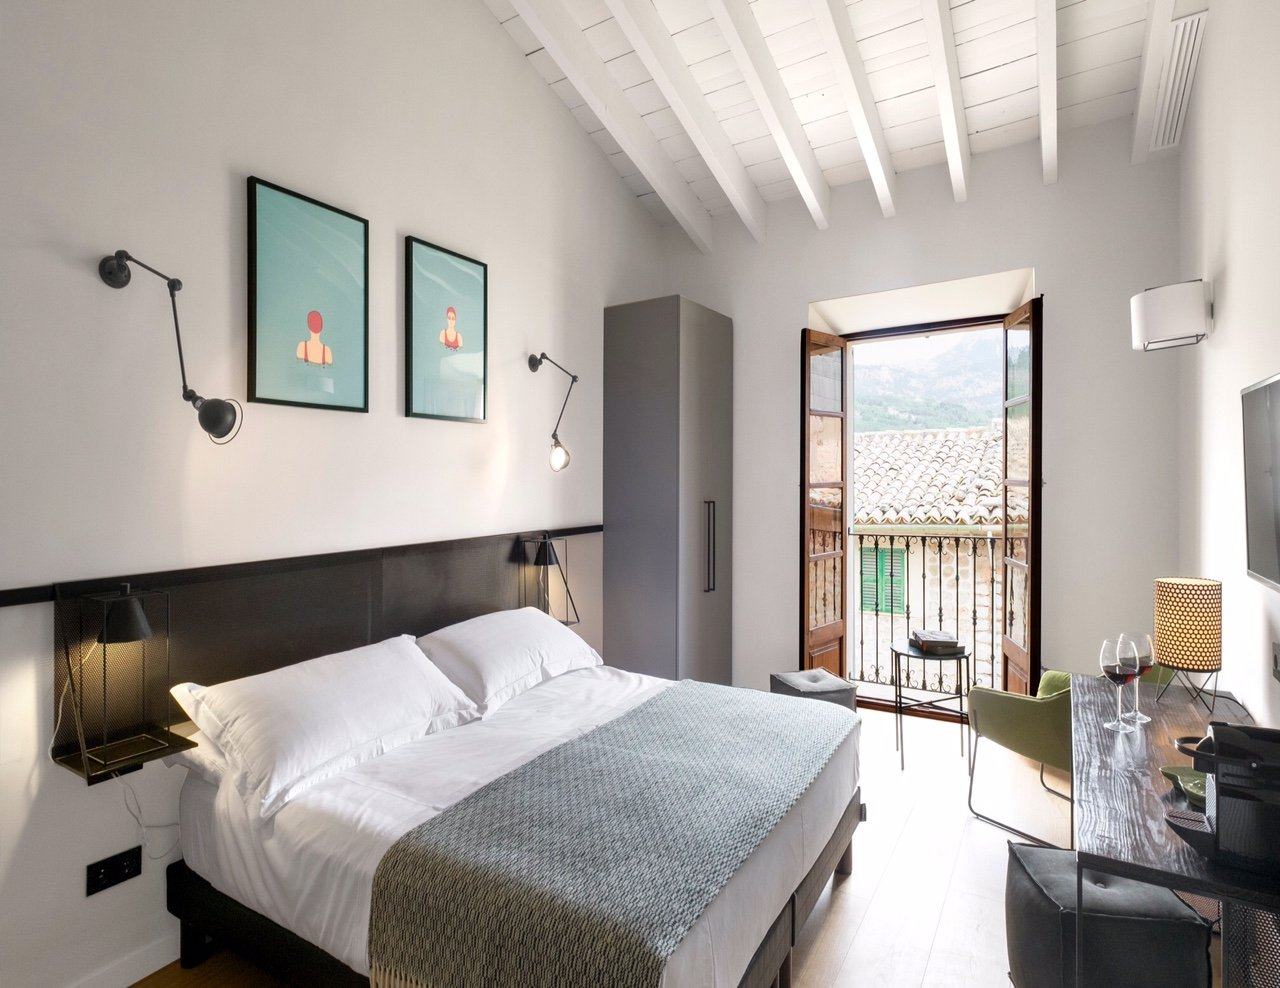 1902 TownHouse - Luxury Hotels - Mallorca - Bedrooms